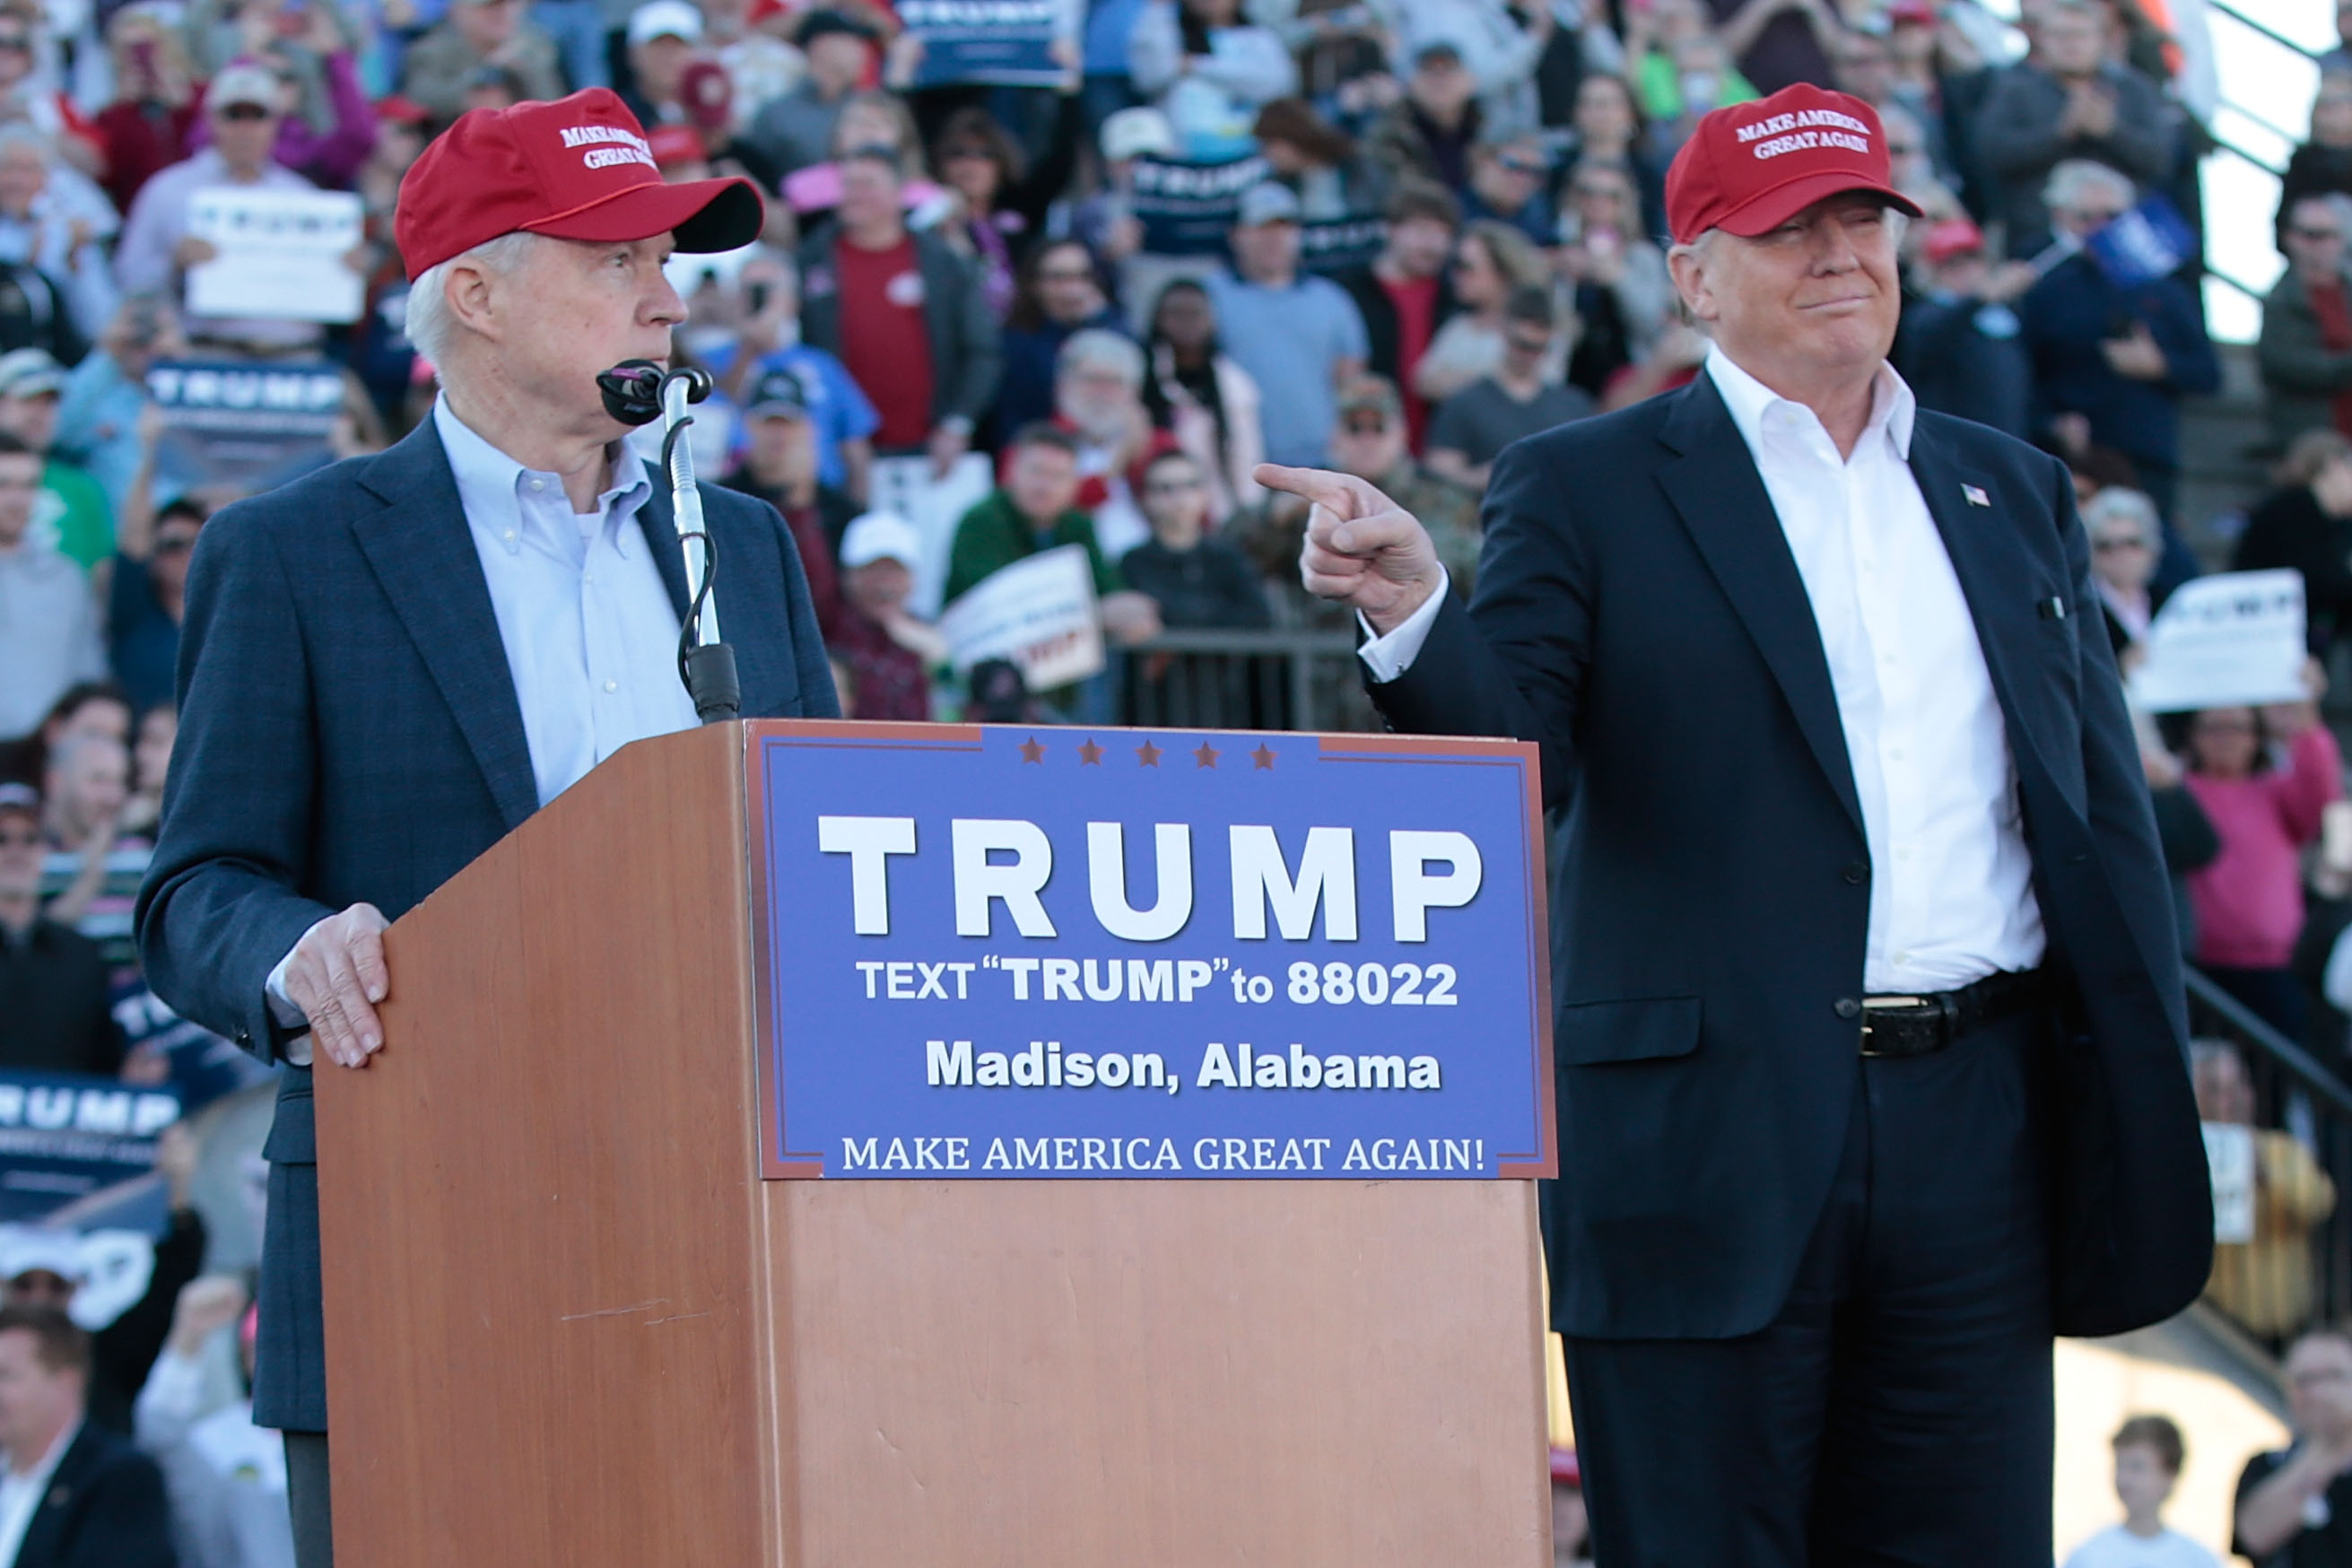 United States Senator Jeff Sessions, R-Alabama, becomes the first Senator to endorse Donald Trump for President of the United States at Madison City Stadium on February 28, 2016 in Madison, Alabama. (Photo by Taylor Hill/WireImage)